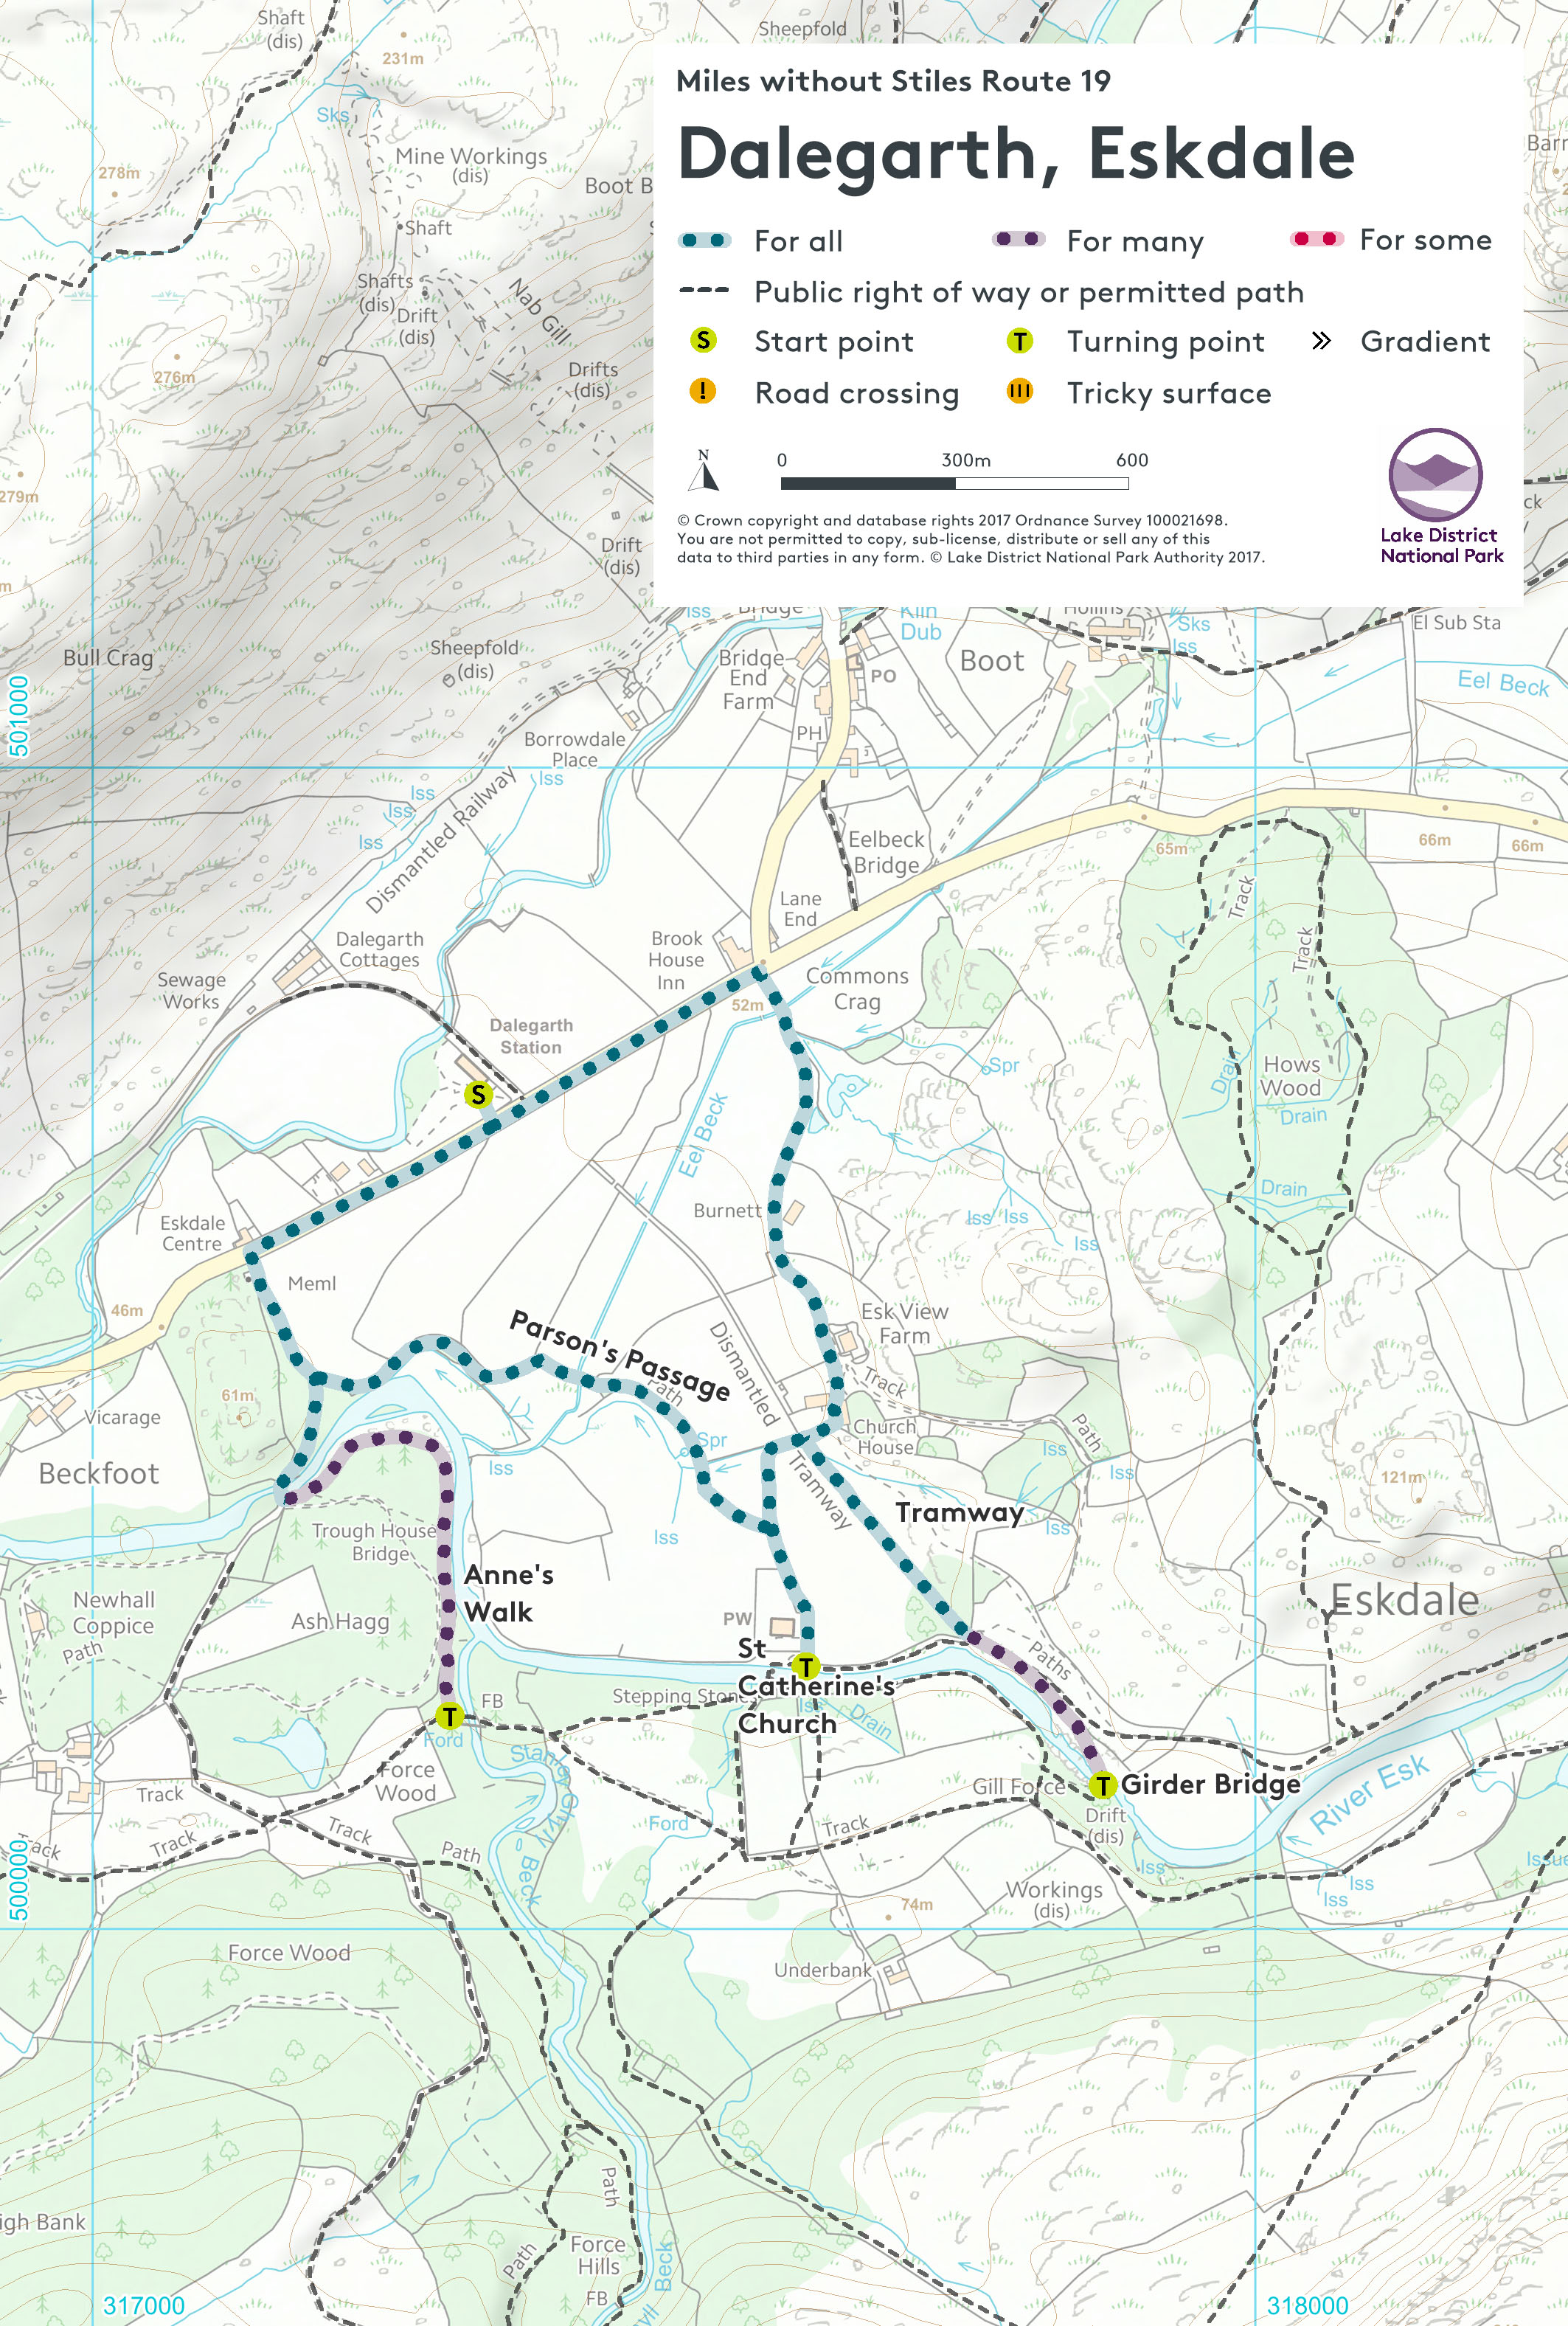 Map - Dalegarth to St Catherien's Church, Eskdale route